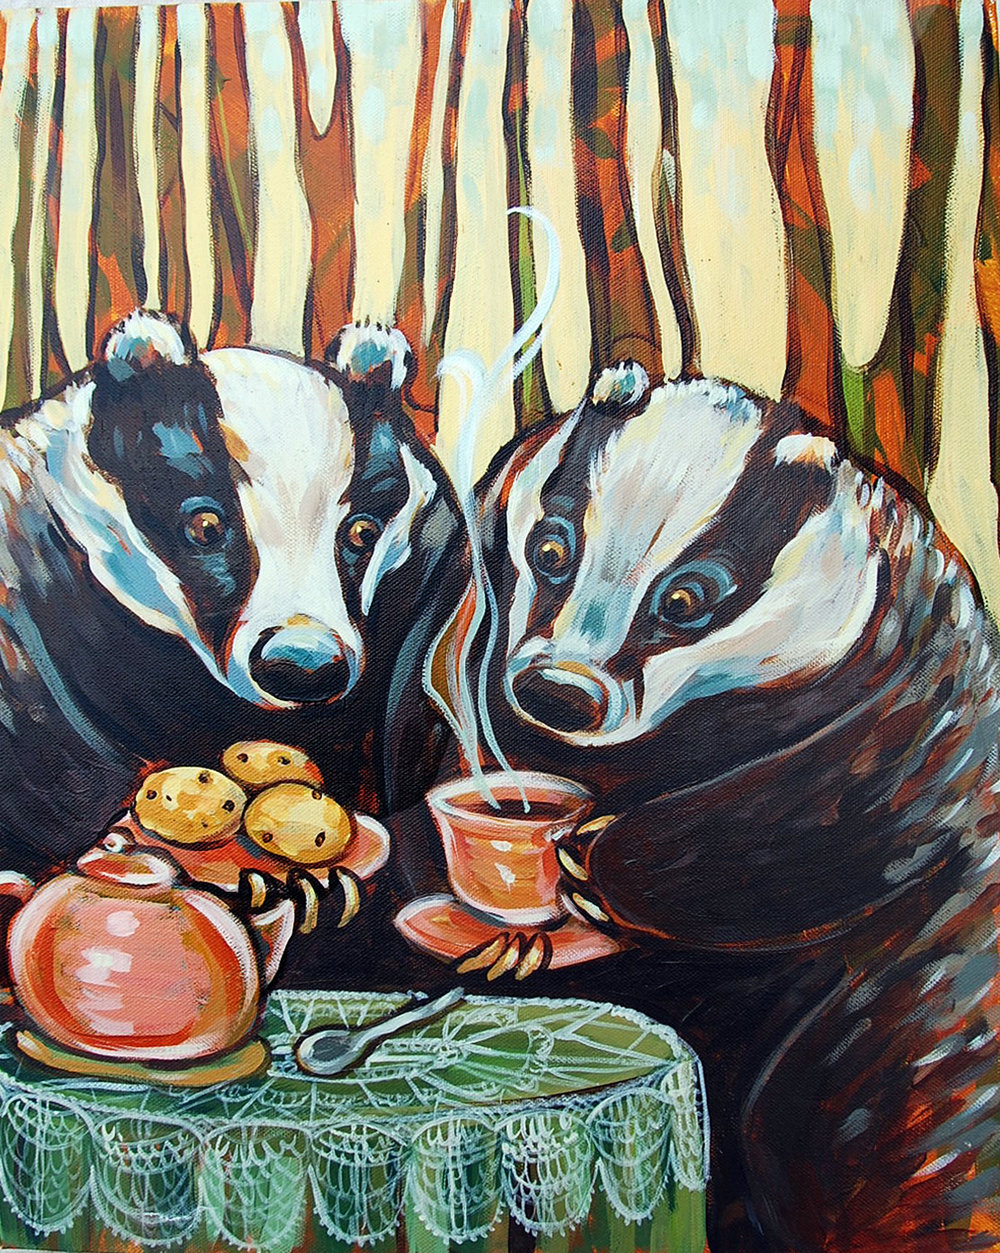 Badger Badger 2011. Sold